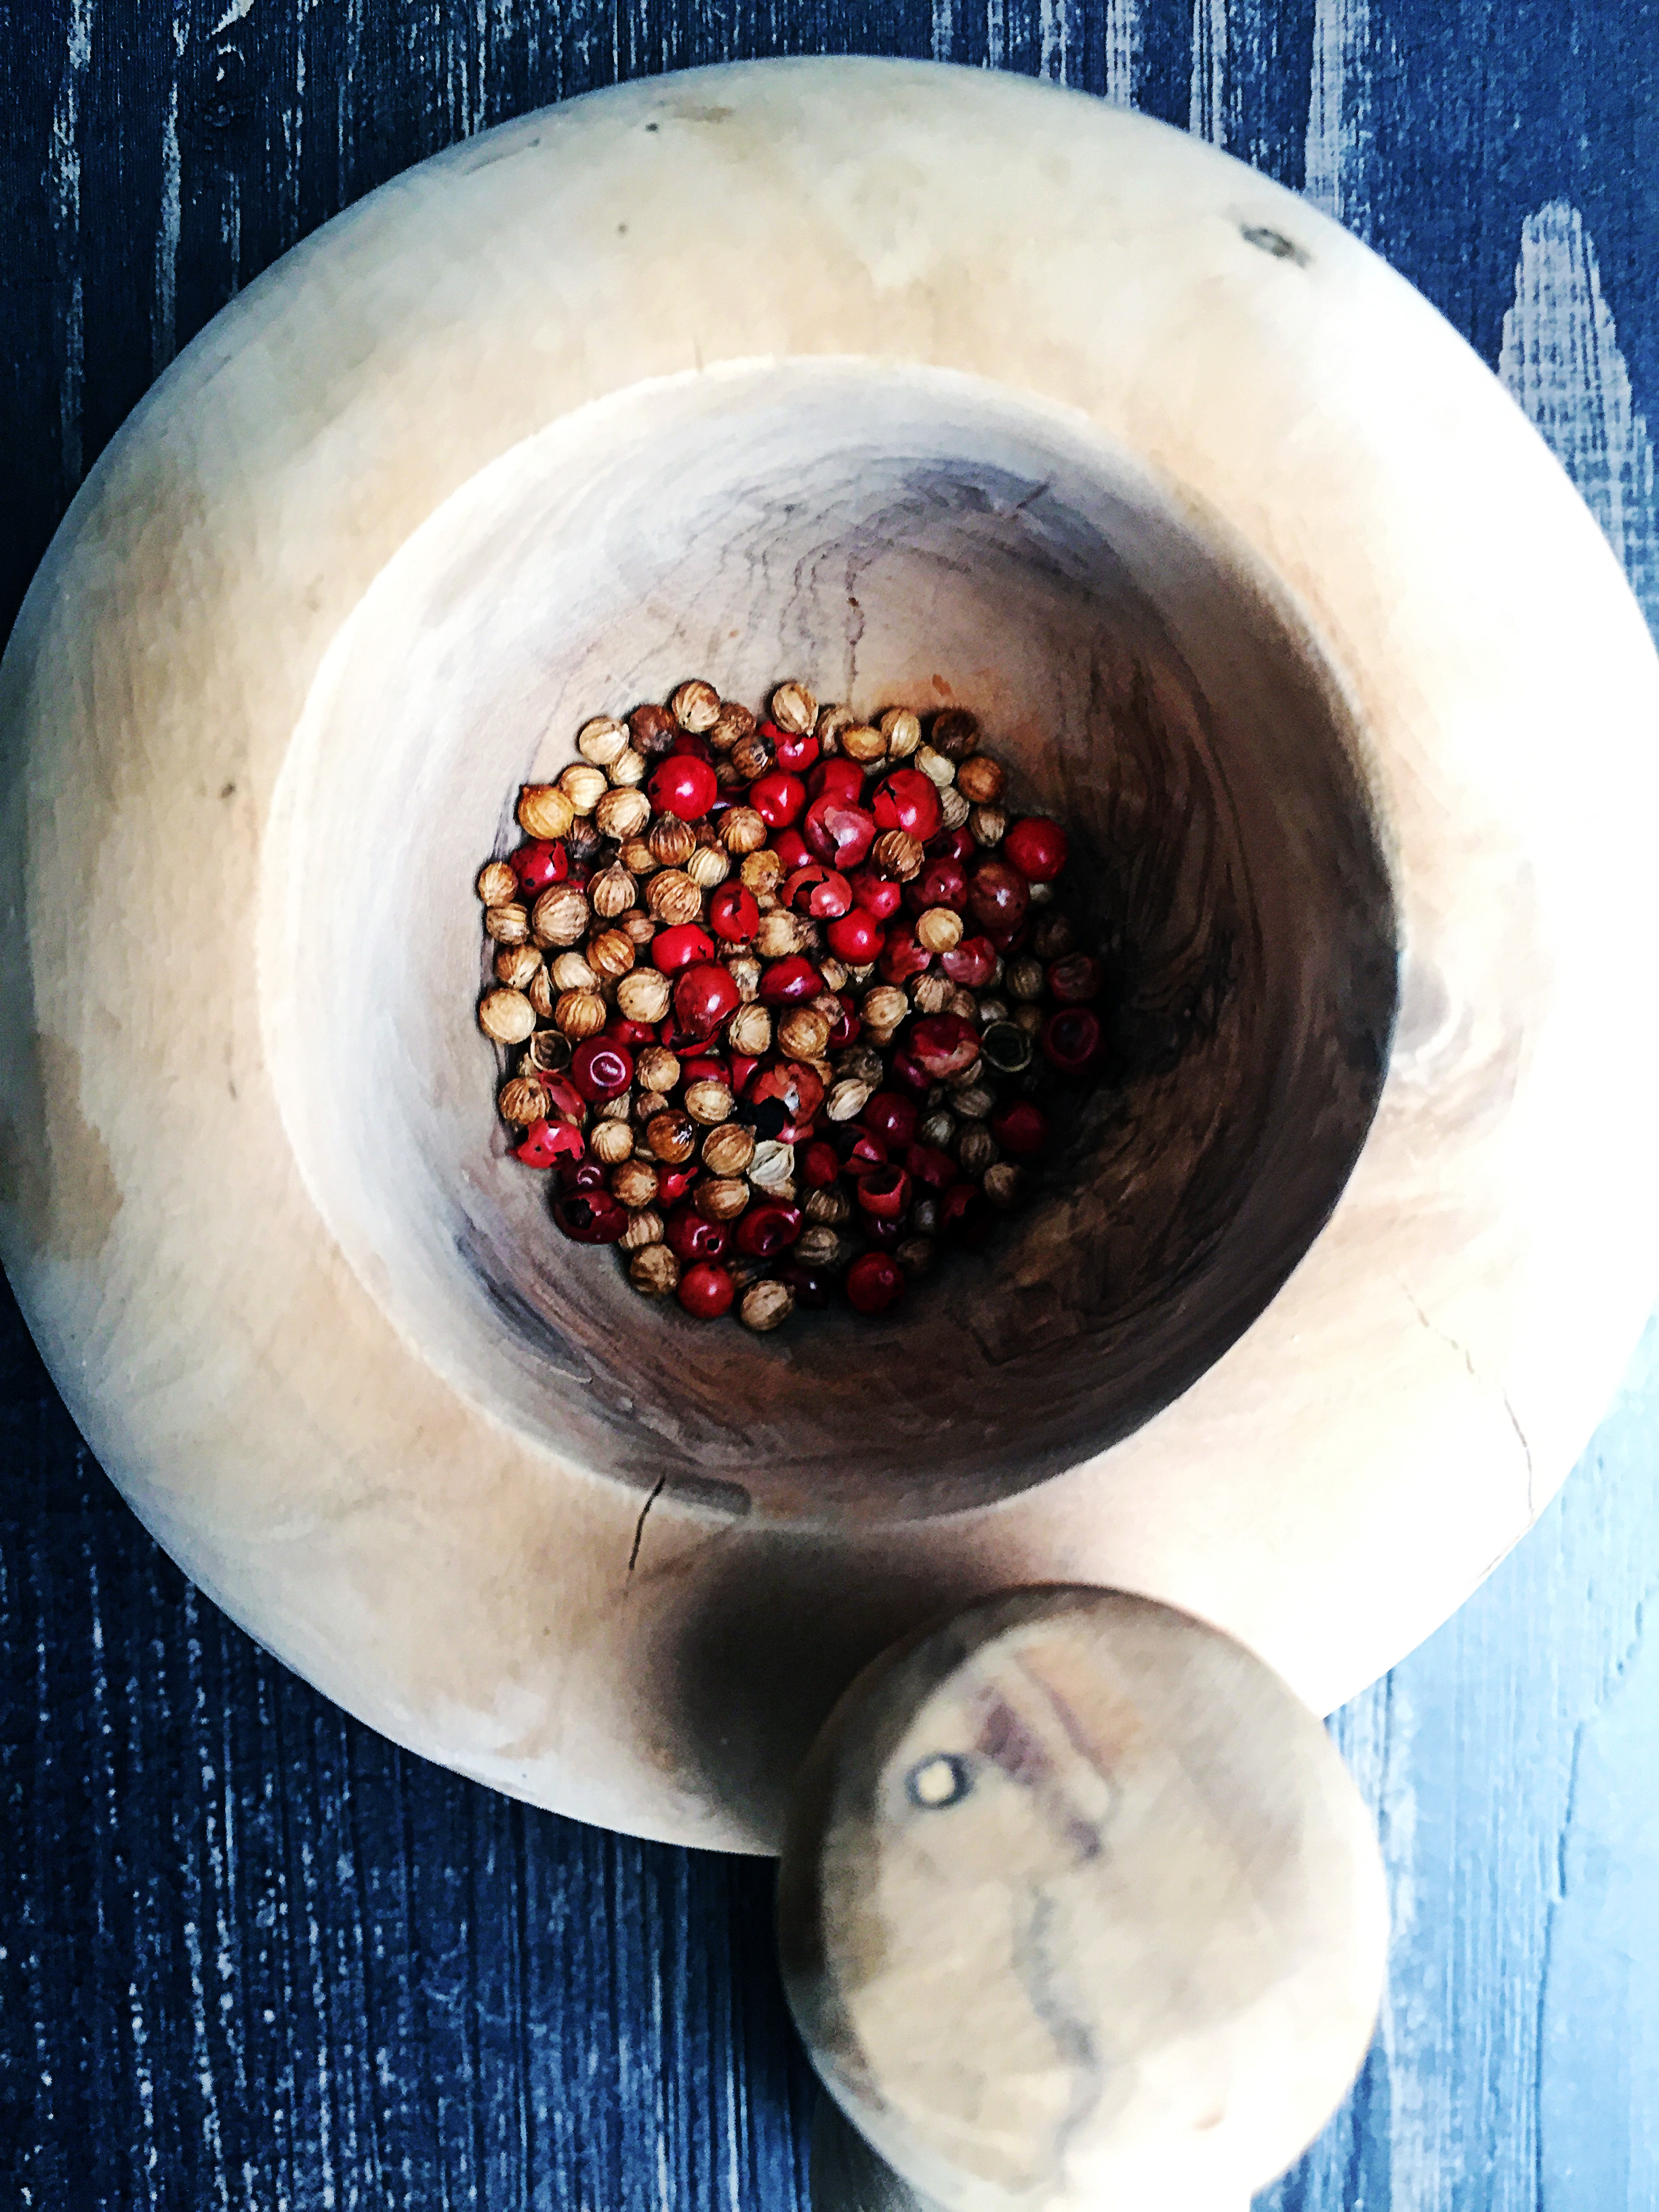 3. Take the toasted spices and place into mortar and pestle to grind it. If you do not have one, you can use a blender or food processor to break them down. You want to create a fine texture.